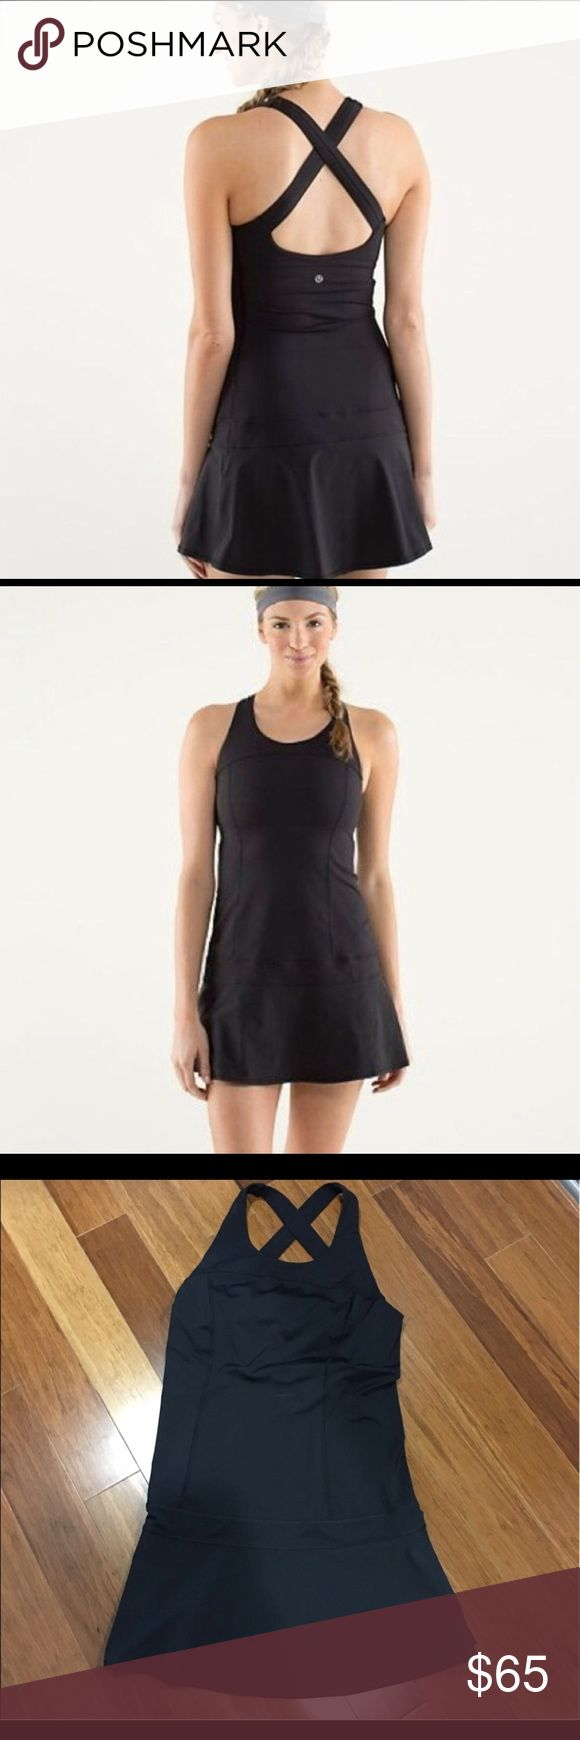 """Lululemon Hot Hitter Black Dress Lululemon Hot Hitter Dress in Black Size 10 // purchased from another posher nwot so only worn once by me // too big so selling // willing to trade for size 8 in same condition.                     Tech specs designed for: tennis, run fabric(s): Power Luxtreme, Power Stretch Swift properties: a perfect grand slam - moisture wicking, four-way stretch, breathable, chafe resistant shelf bra: yes support level: medium front length: 27 ½"""" back length: 22 ½""""…"""